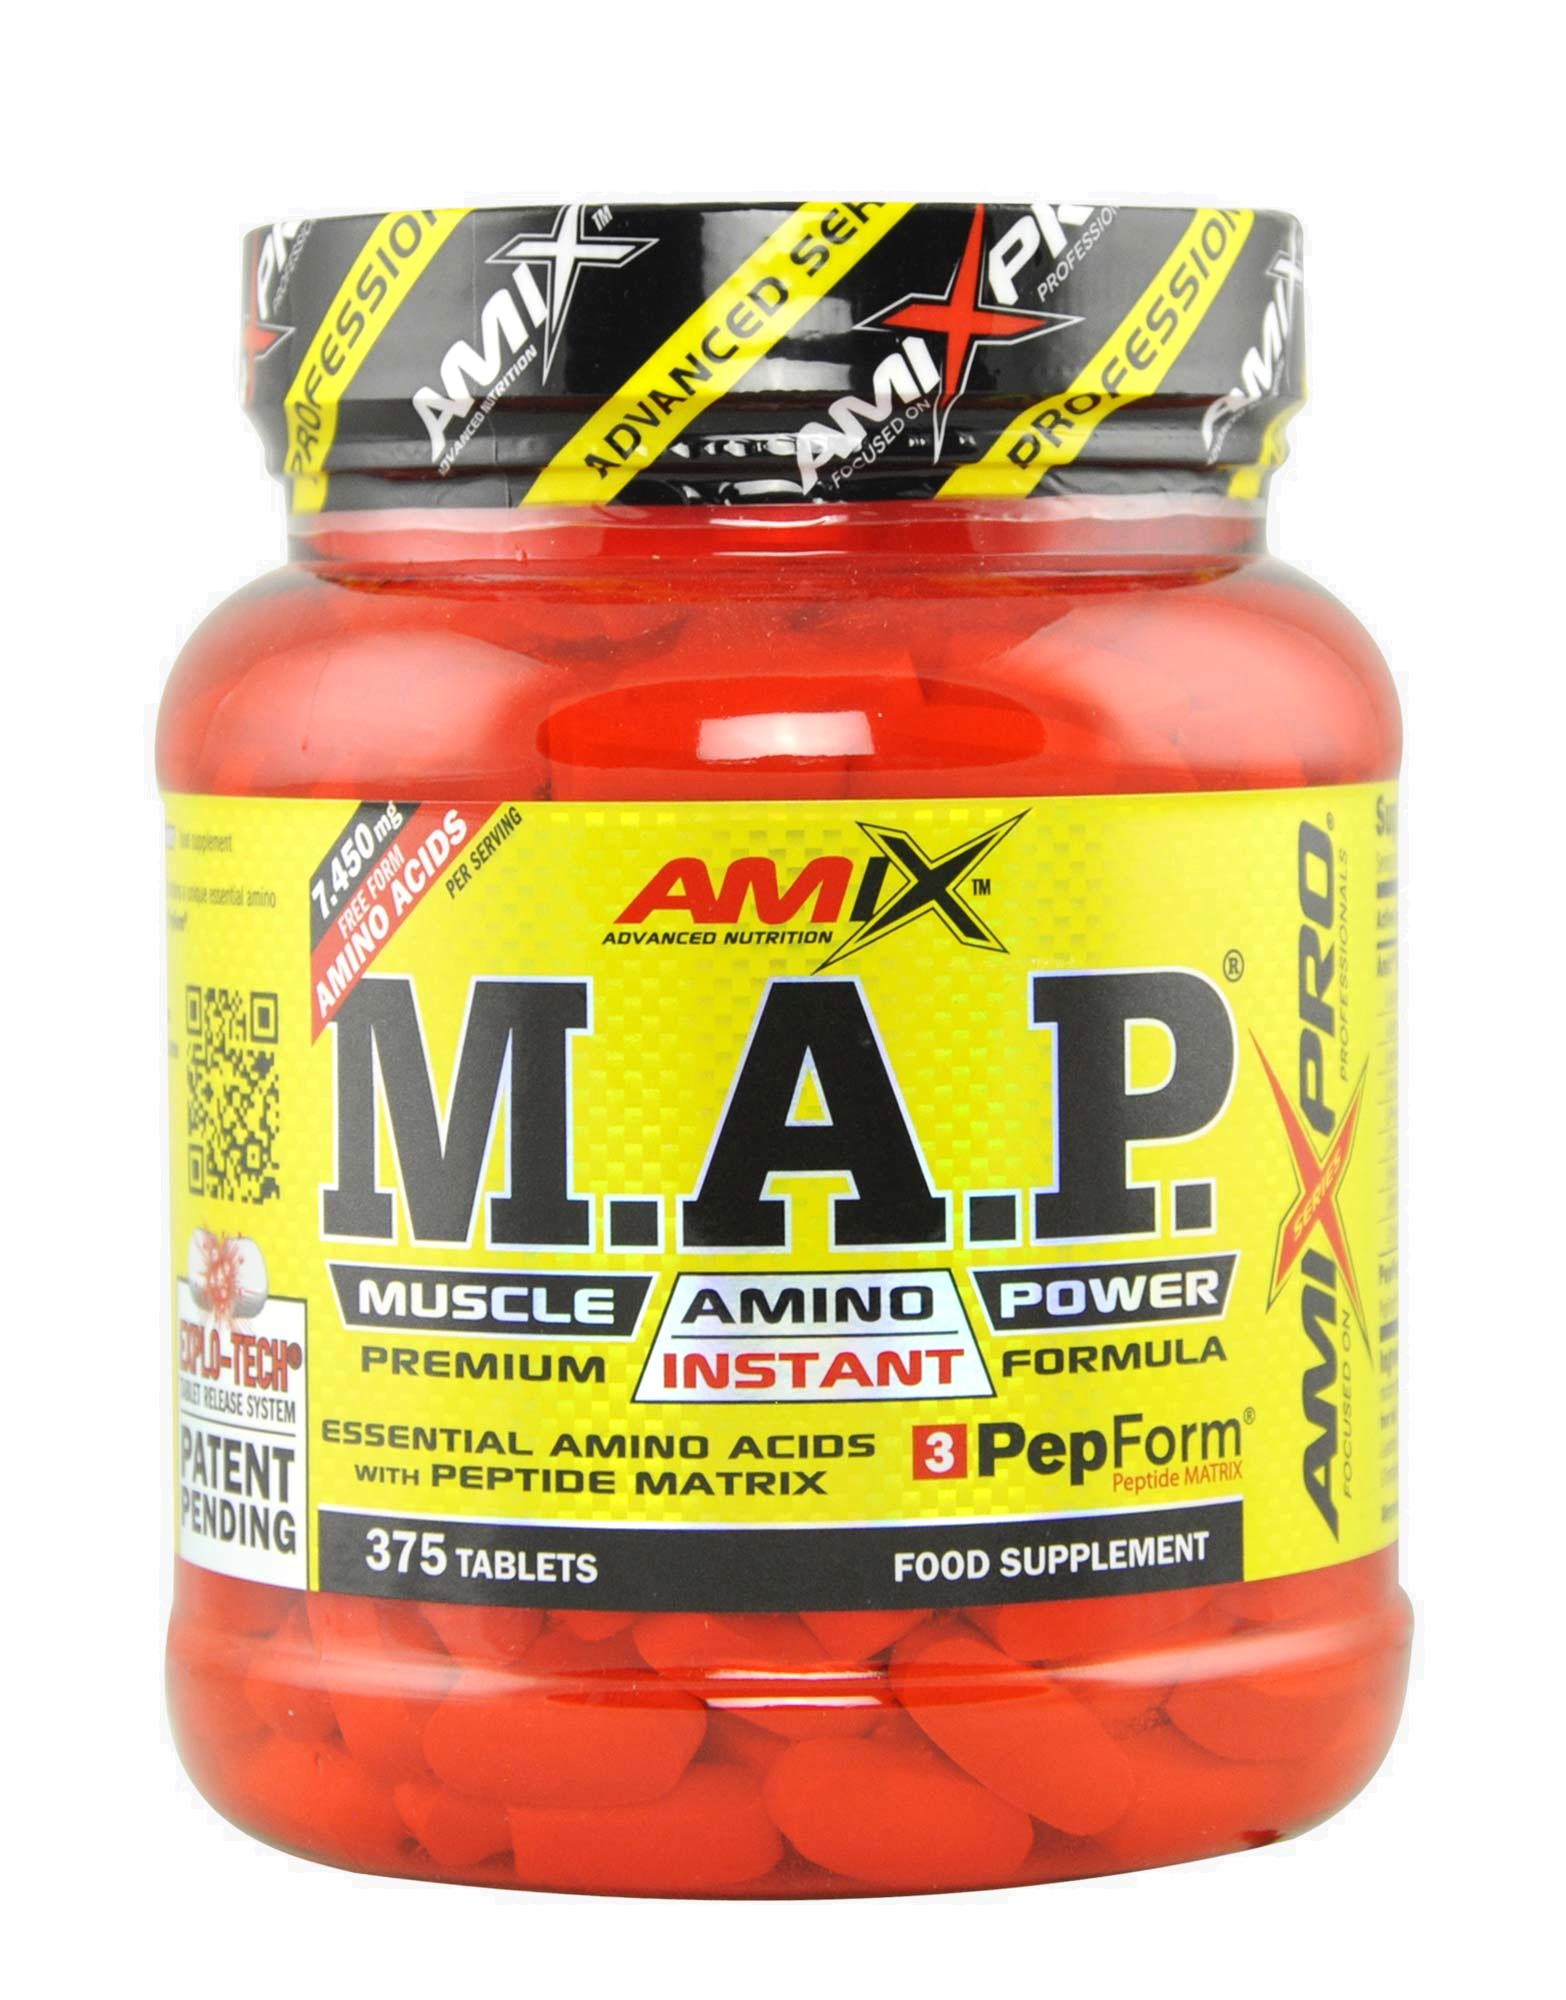 M.A.P. - Muscle Amino Power by Amix, 375 tablets - iafstore.com on dhea supplements, vitamin supplements, amino acids cellucor, creatine supplements, lysine supplements, magnesium supplements, amino energy, protein supplements, amino acids in polypeptide, amino acids side effects, fat burning supplements, amino acids and their codons, s-adenosyl methionine supplements, glutamine supplements, amino acids before and after, amino acids form, amino acids connected, amino protein, amino acids weight loss, amino acids benefits,